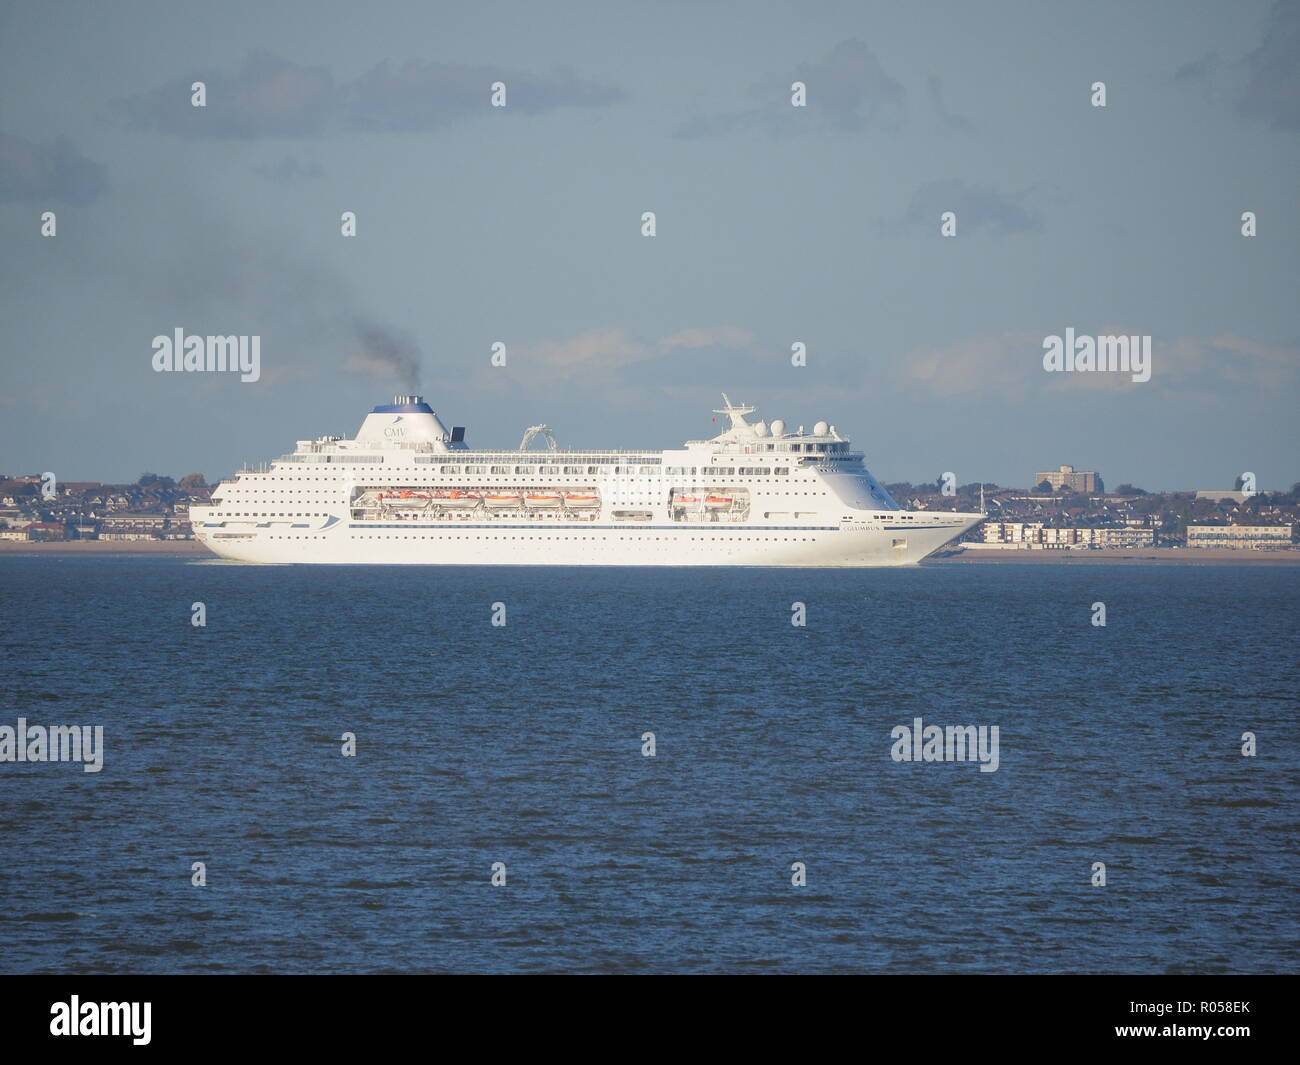 Sheerness, Kent, UK. 2nd Nov, 2018. Cruise ship 'Columbus' passing Sheerness on a sunny afternoon. Columbus is 246m long by 32m wide and was purpose-built in 1988 for deep sea ocean cruising.  Credit: James Bell/Alamy Live News Stock Photo